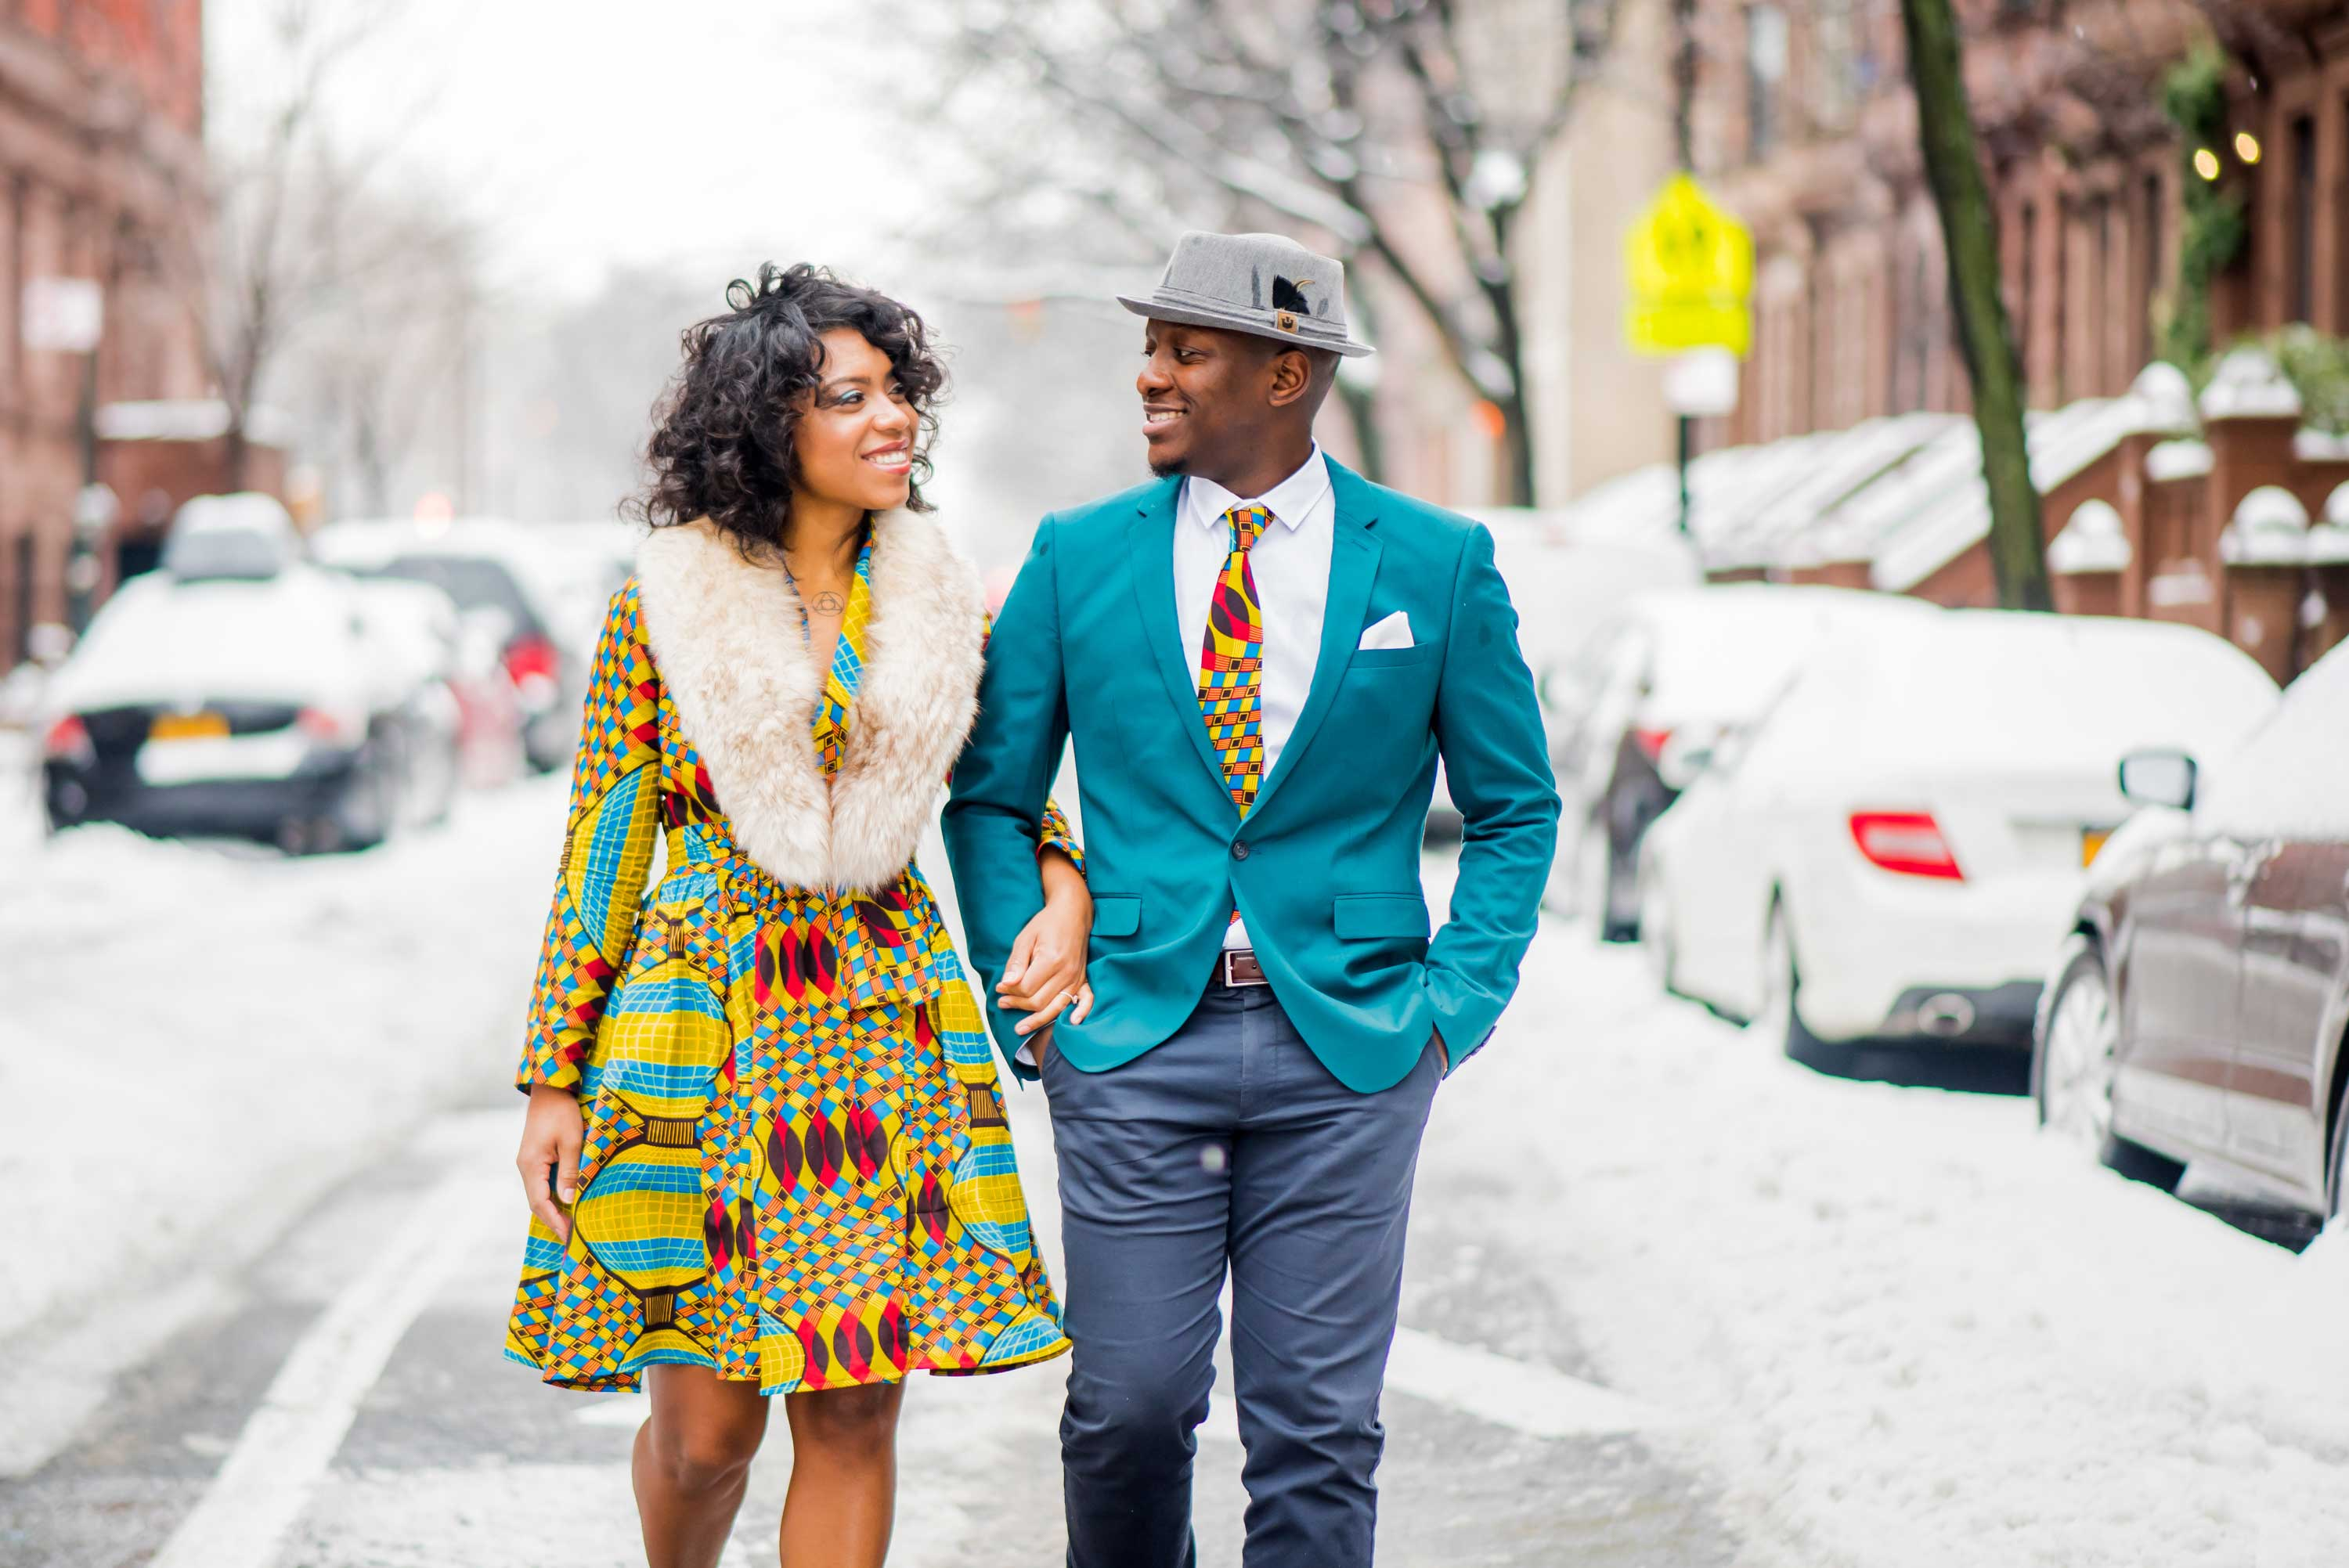 Colorful engagement shoot outfits in New York City neighborhood snow